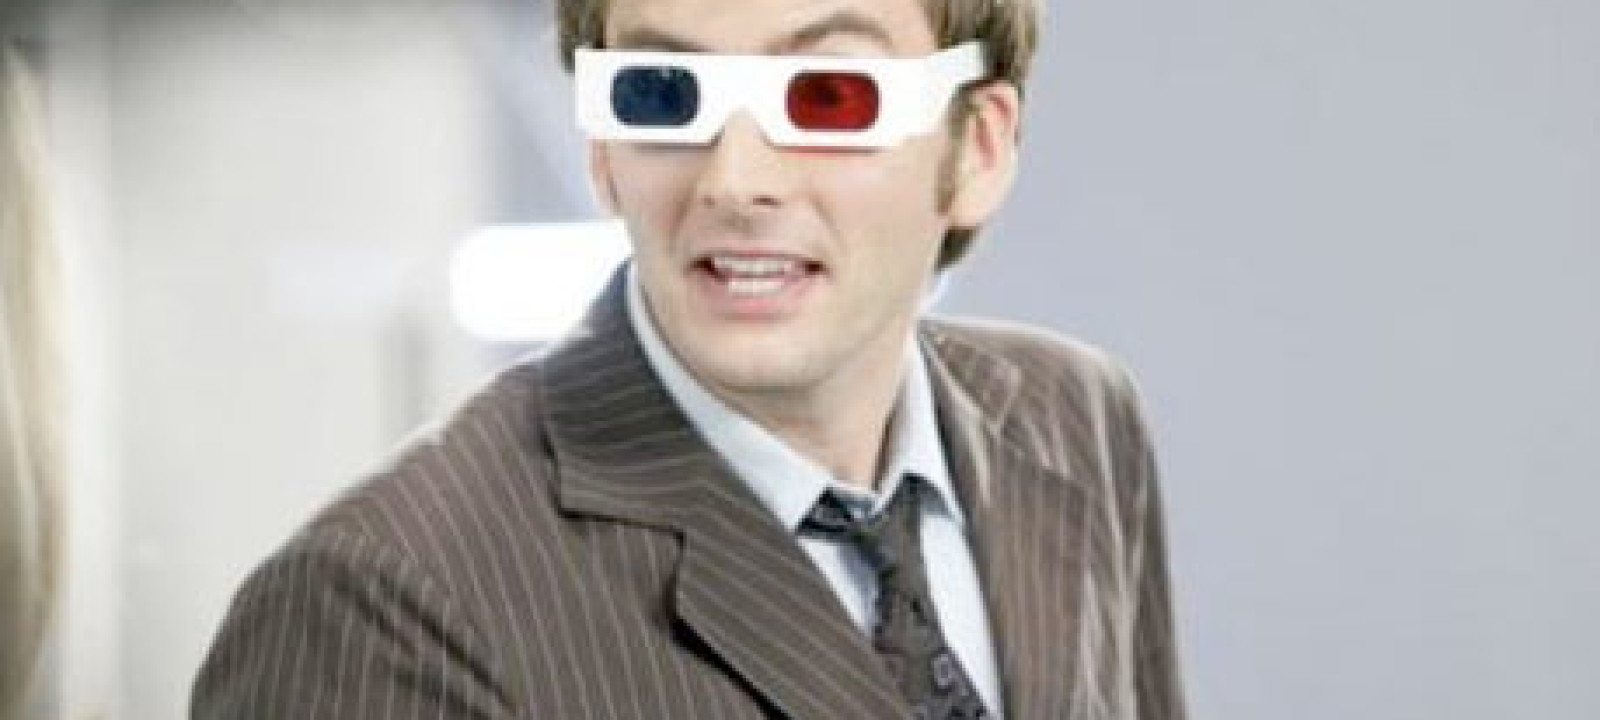 Tenth Doctor's 3D glasses